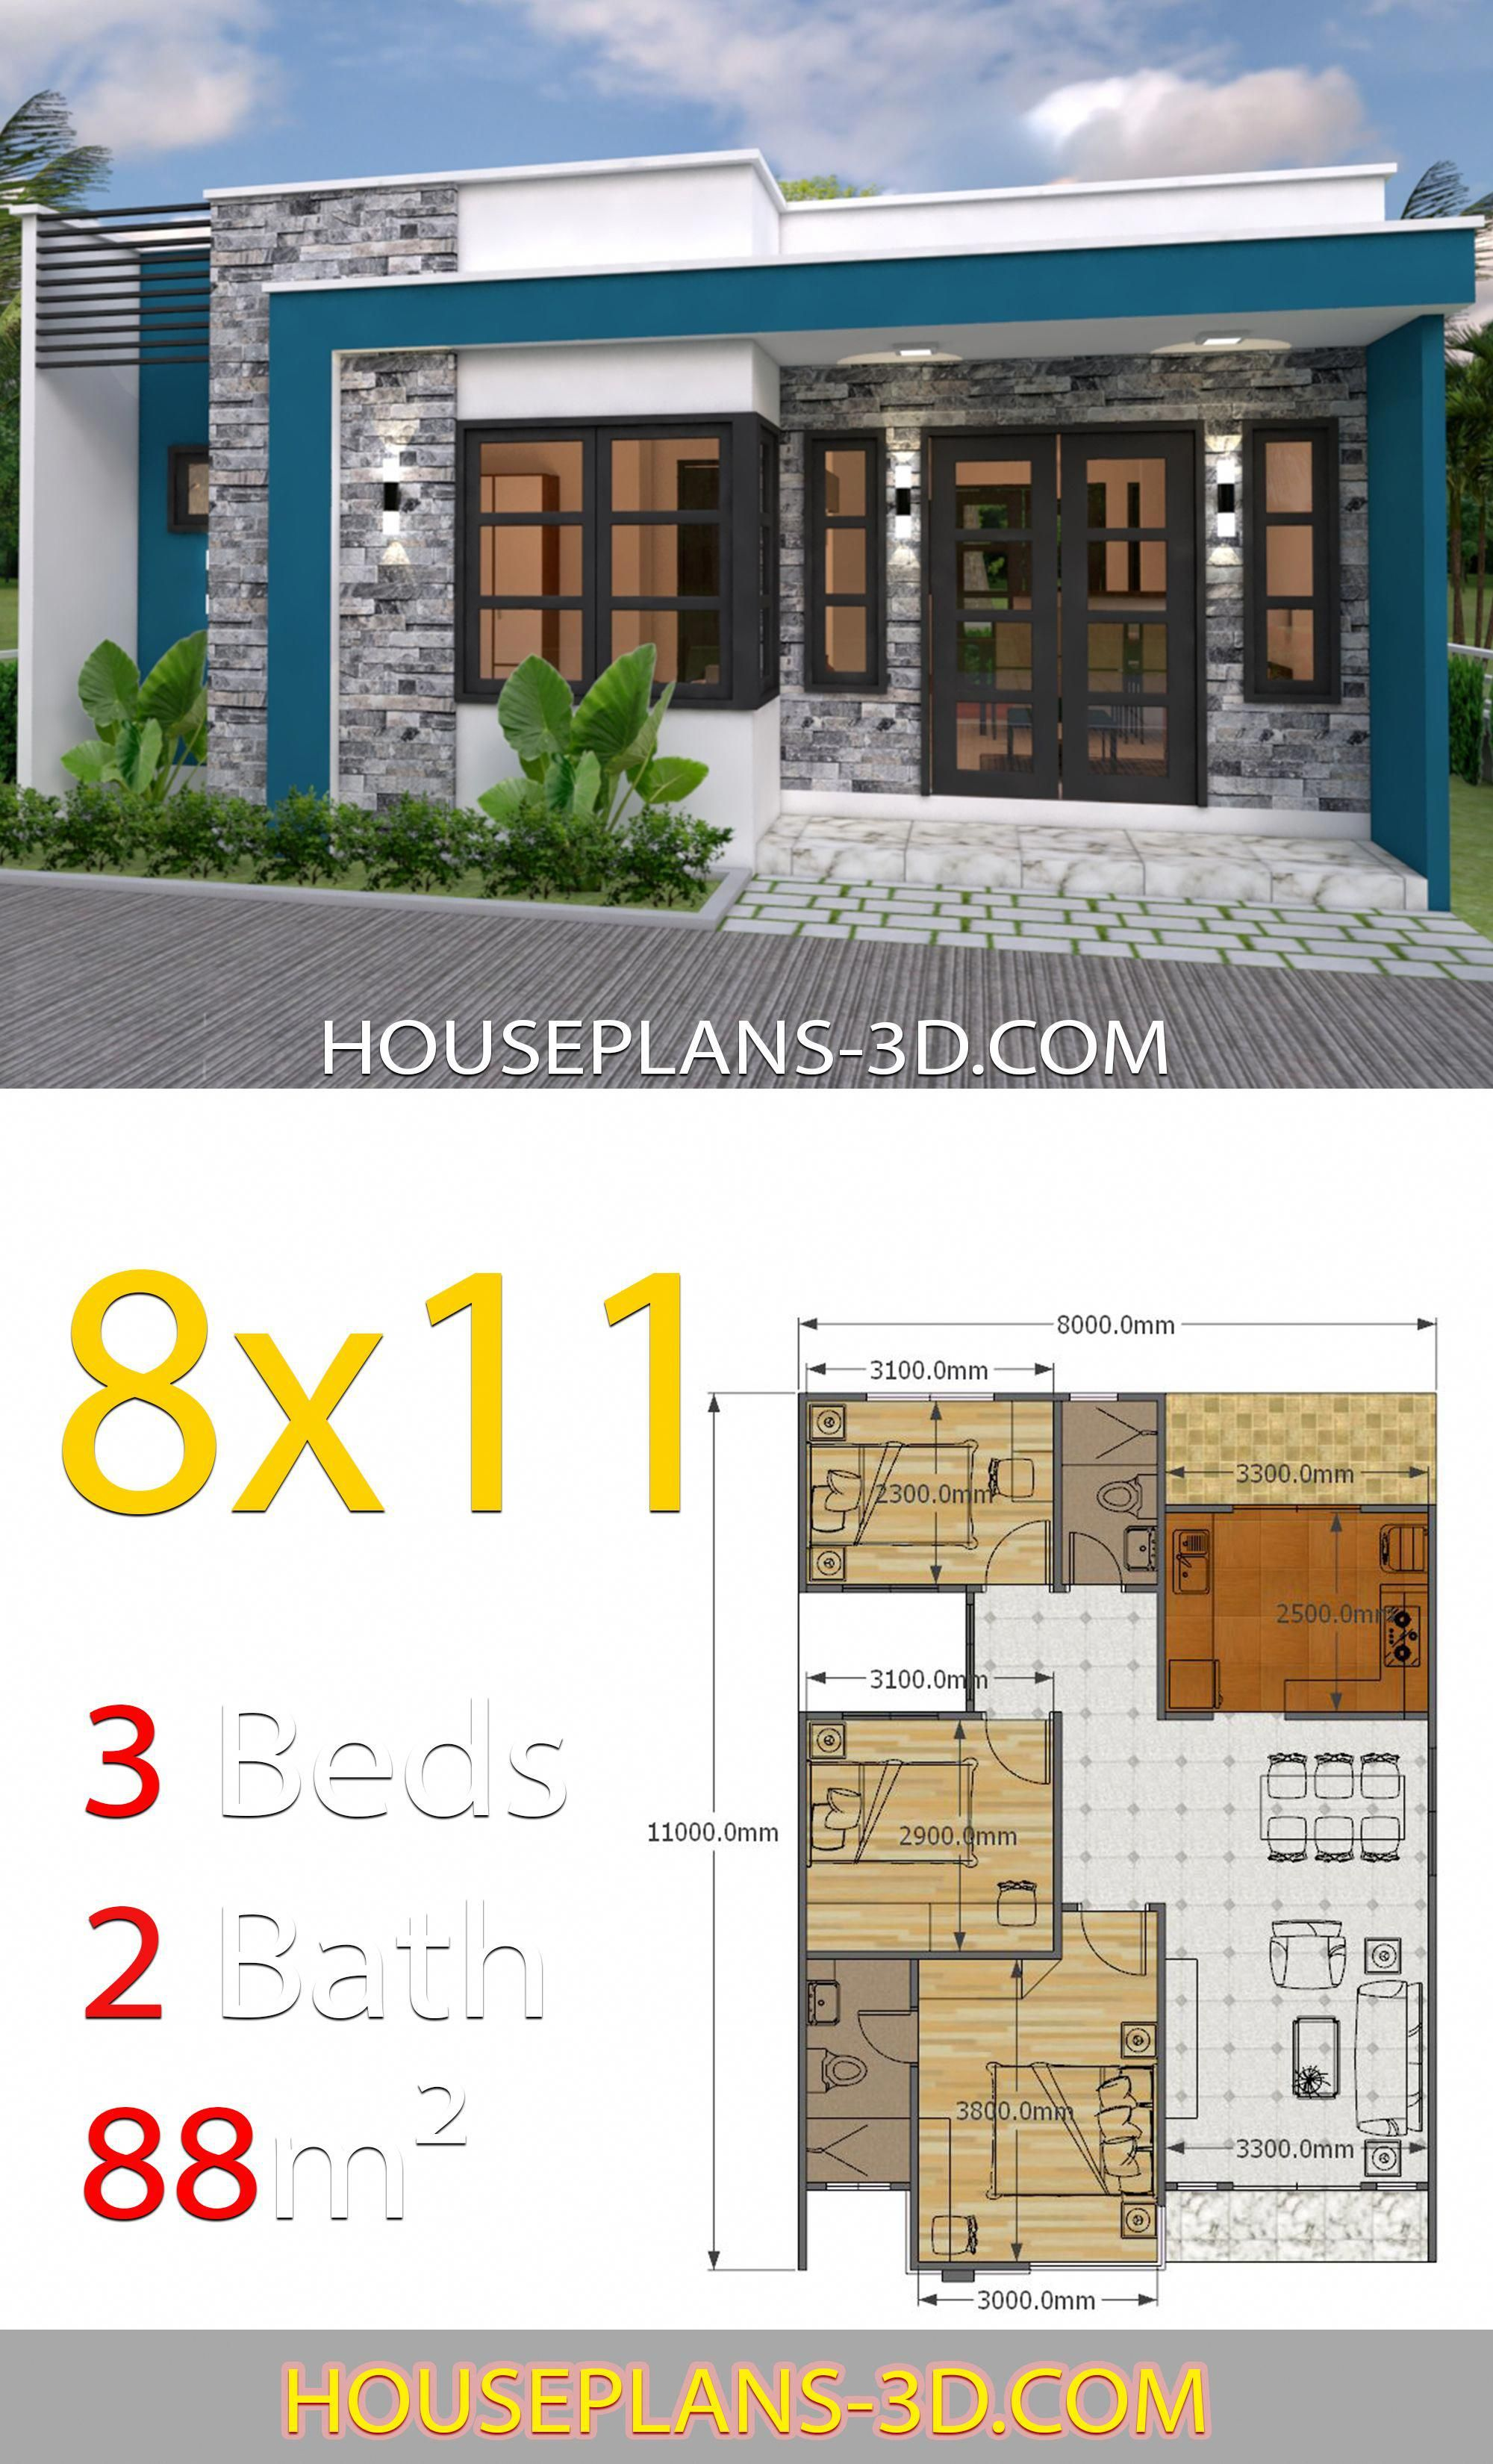 Future Dream House Dreamhouses In 2020 House Construction Plan House Plans My House Plans